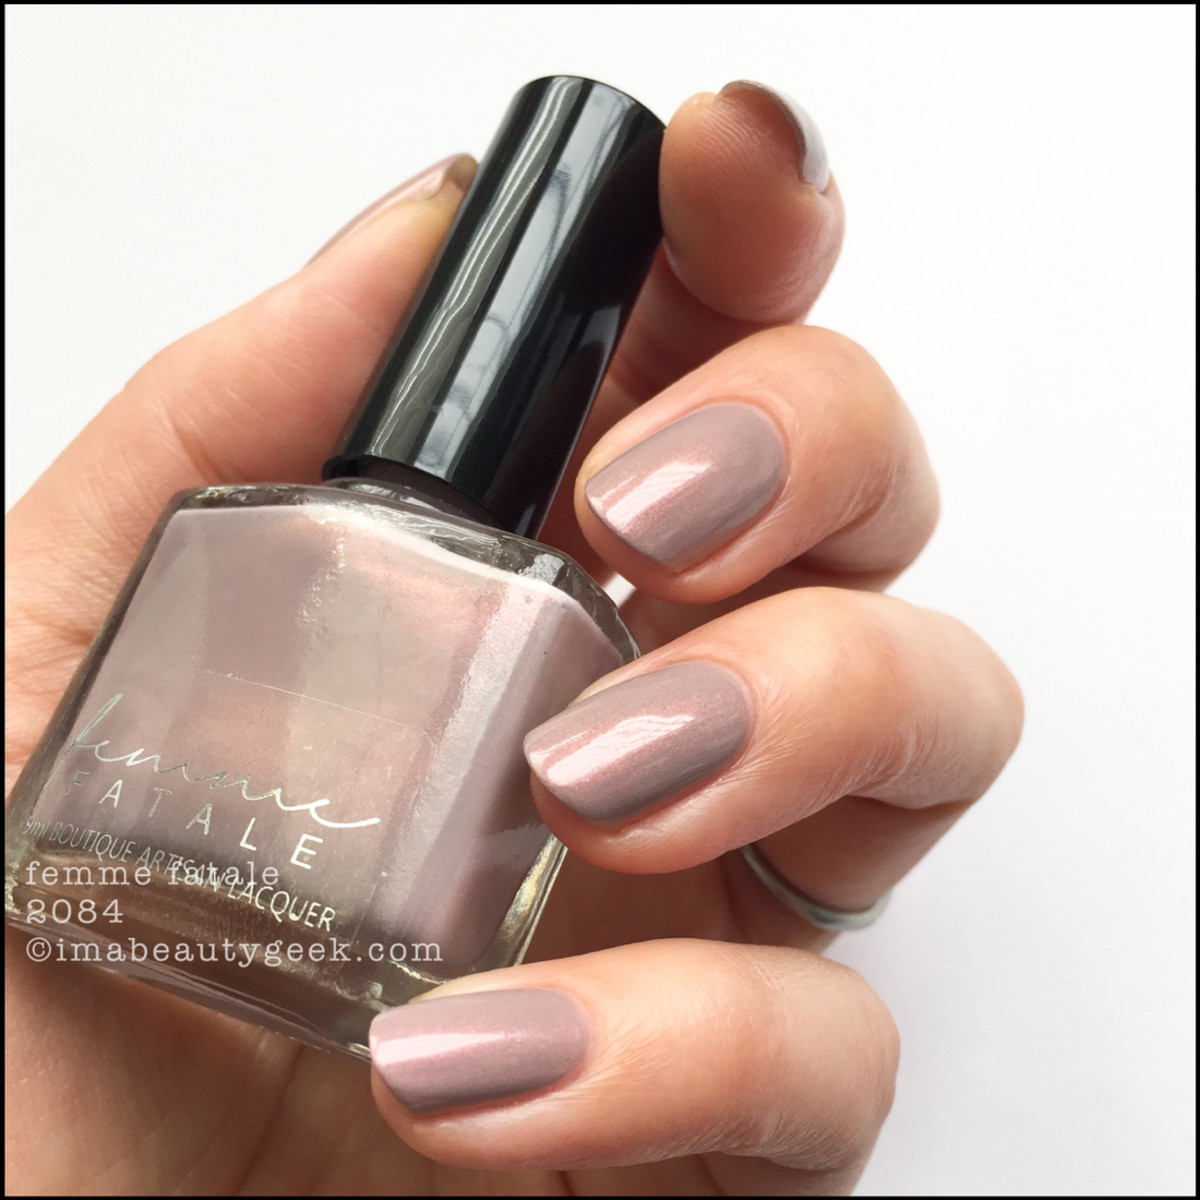 Femme Fatale Nail Polish Swatches Review_2